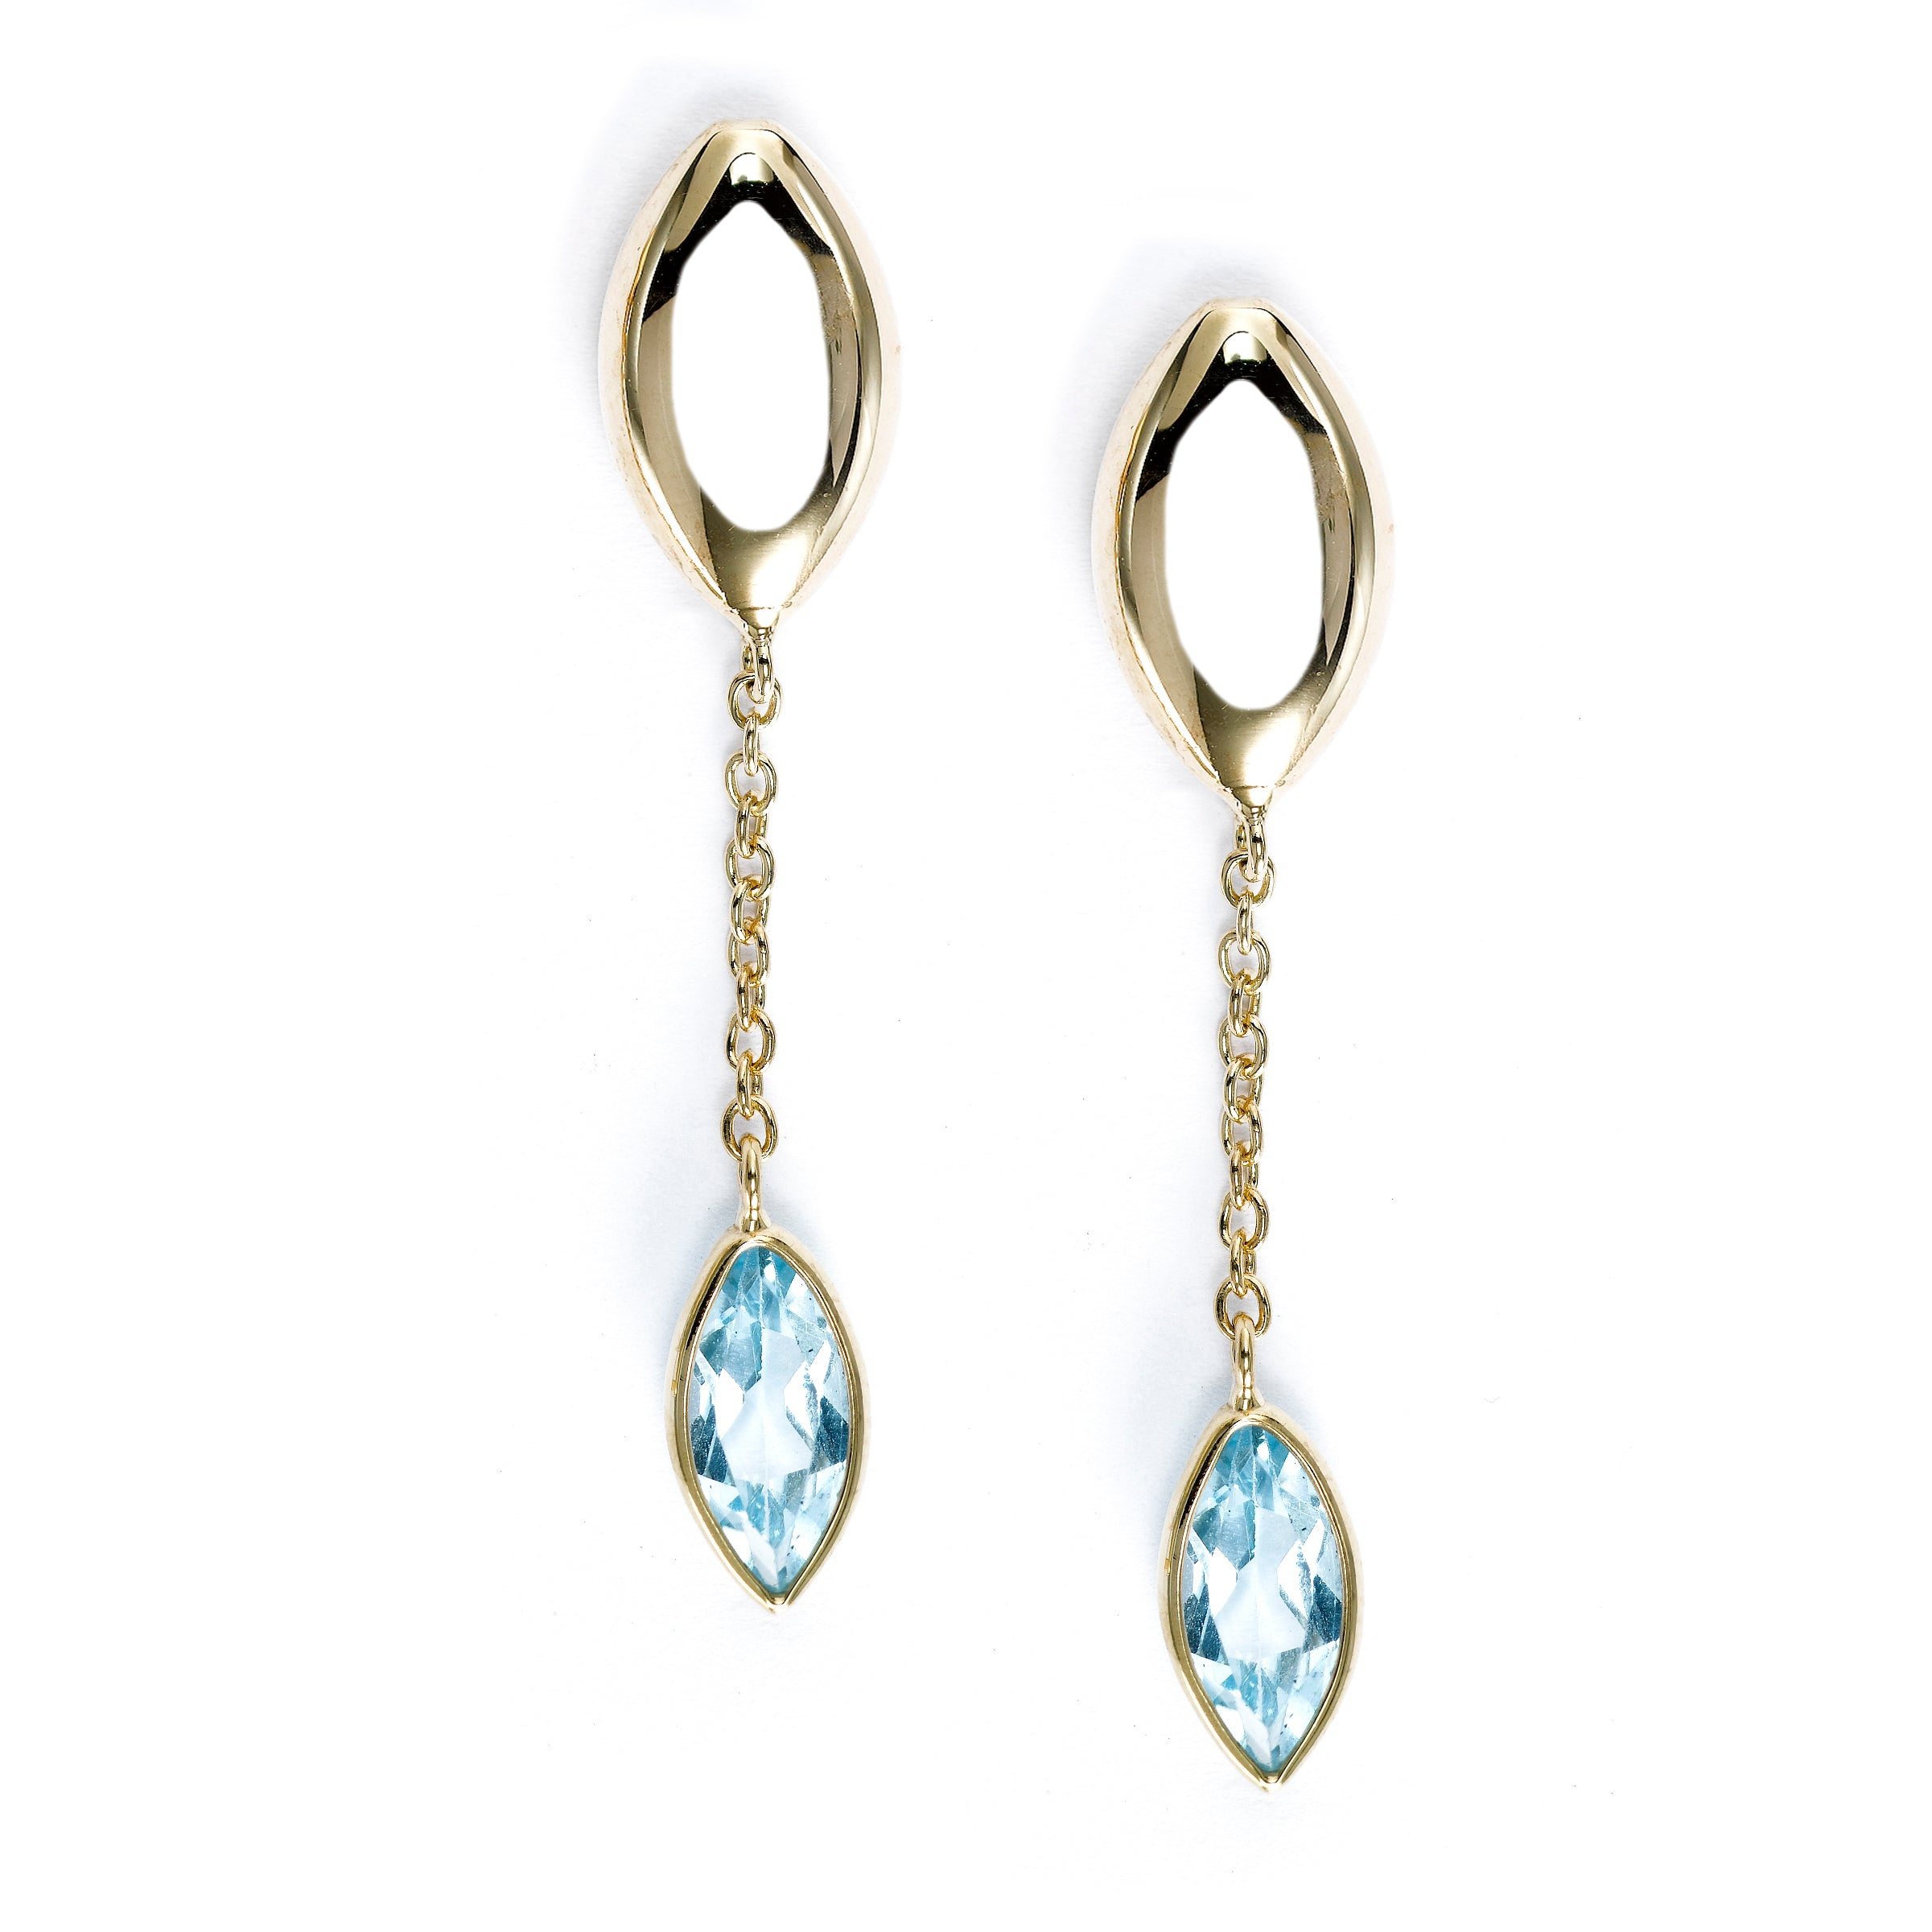 Blue Topaz Dangle Earrings, 14K Yellow Gold